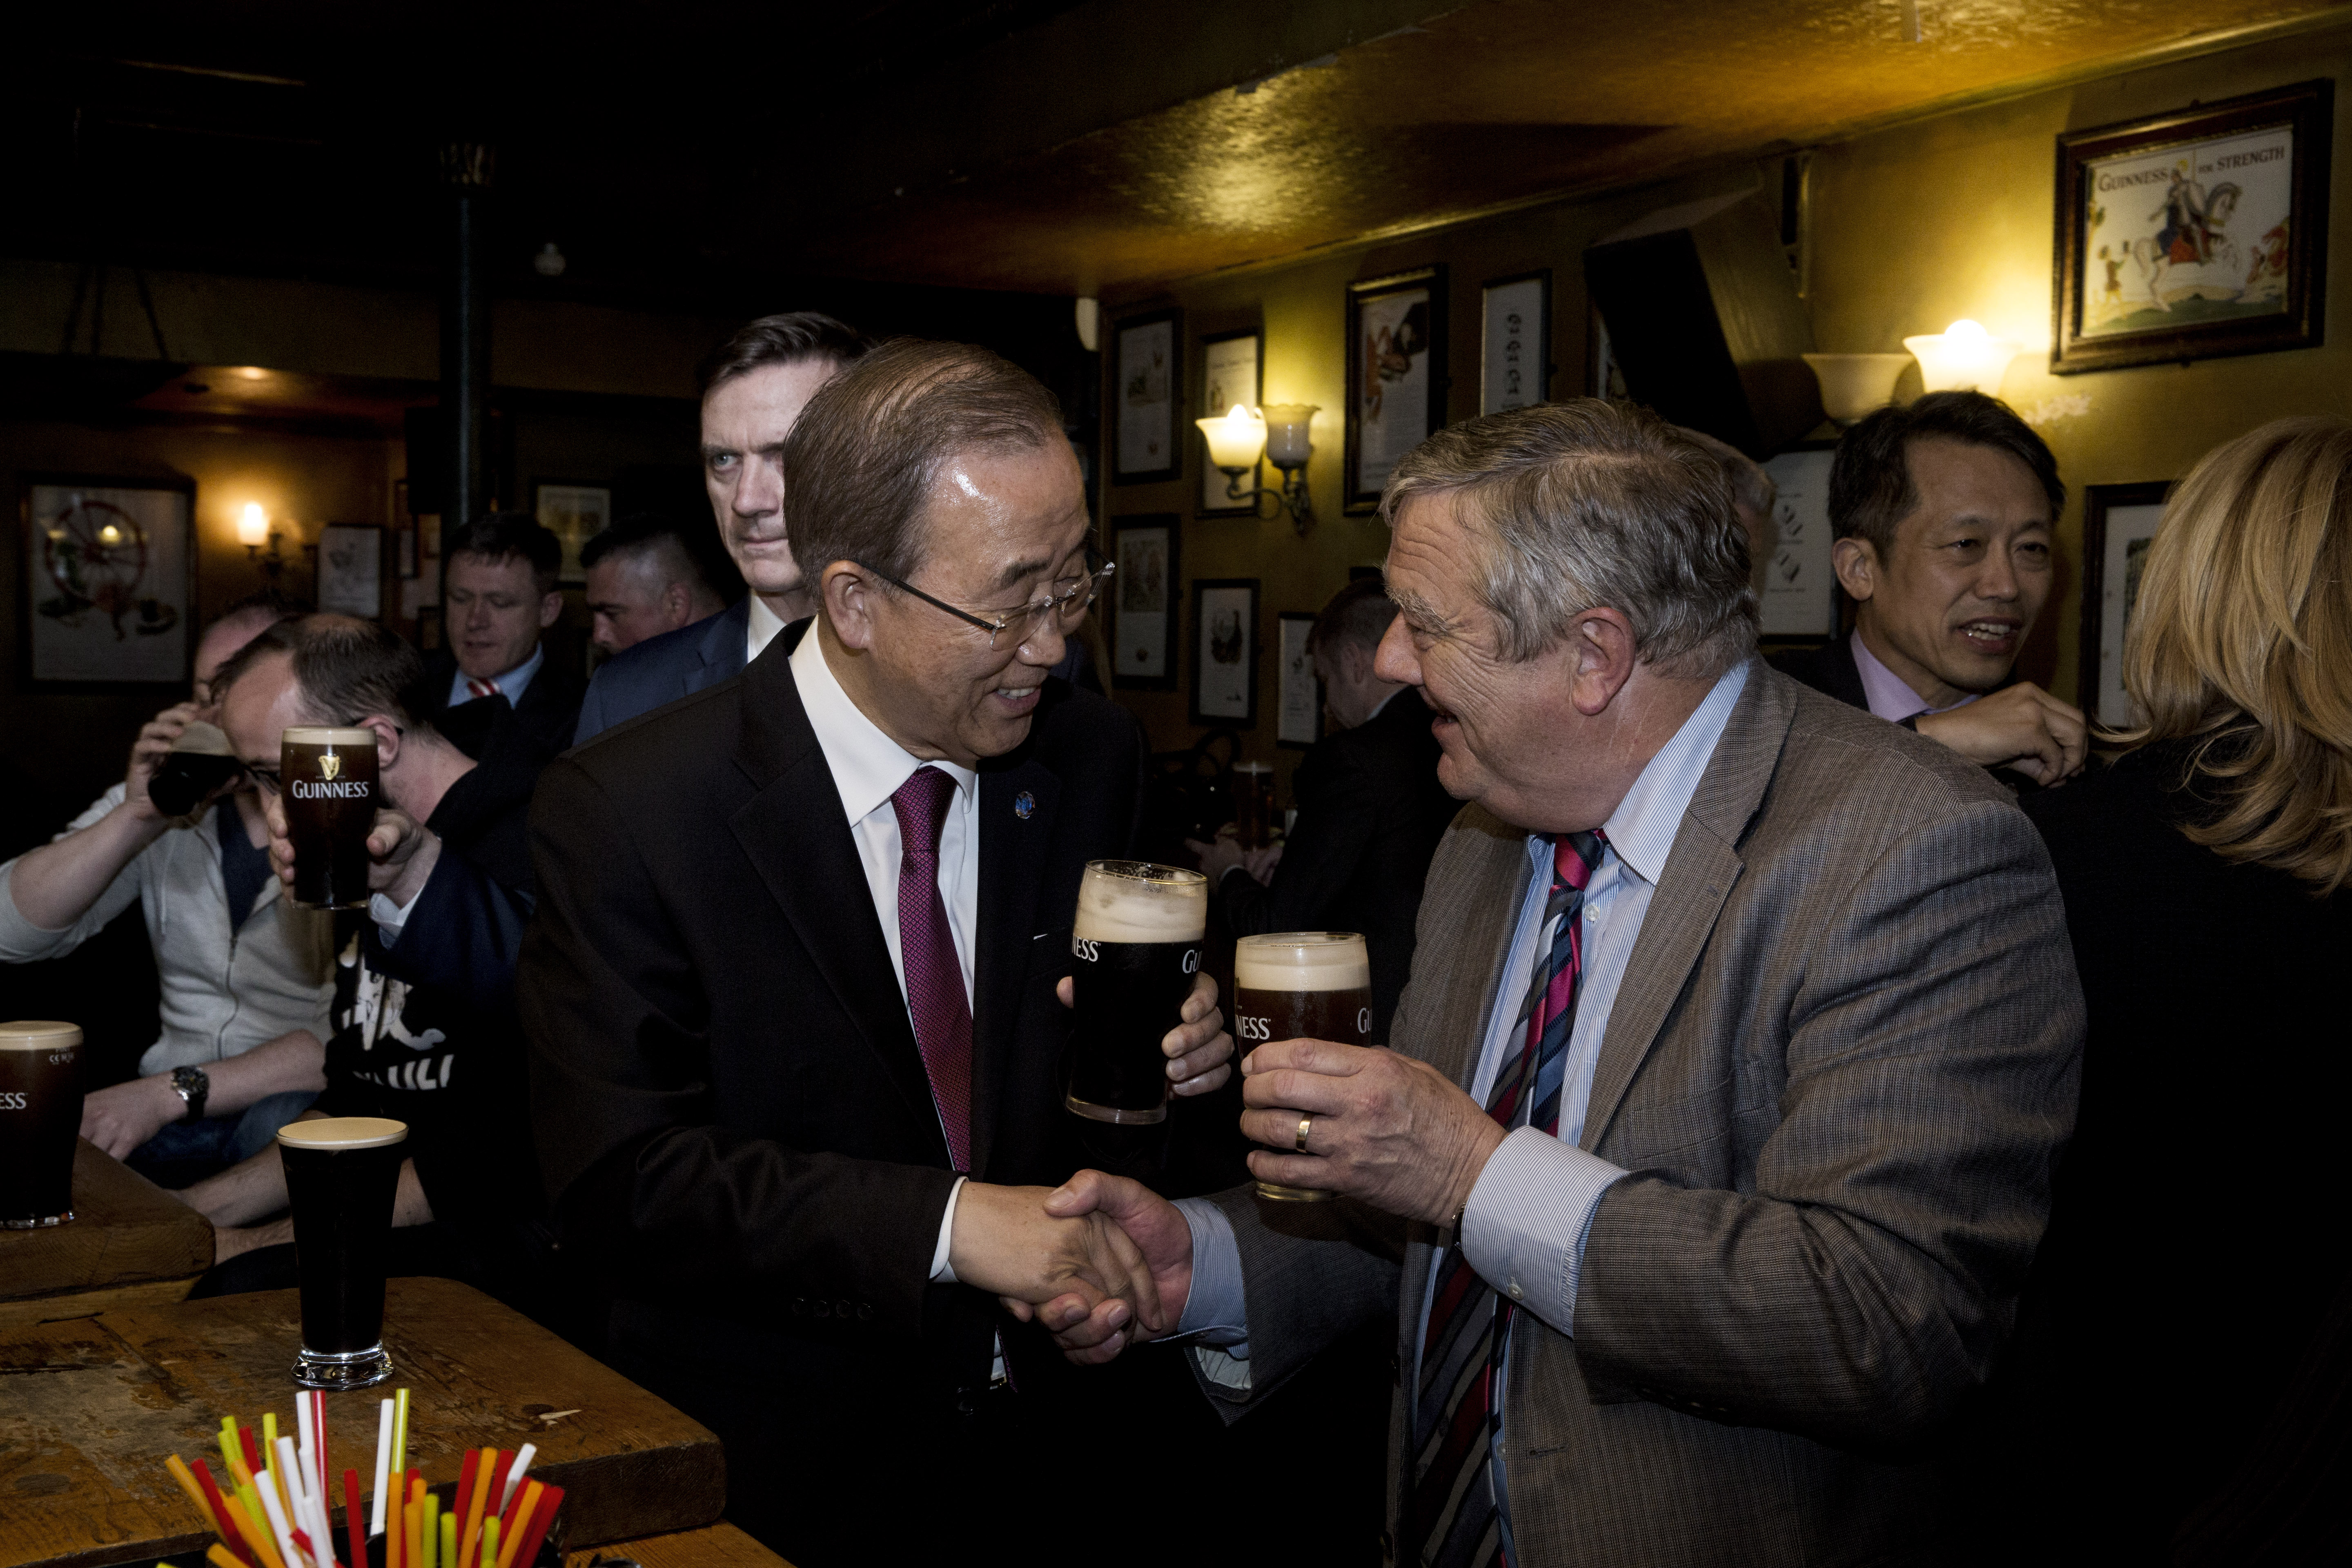 Ban Ki moon Michael Kiely share a beer and a handshake.